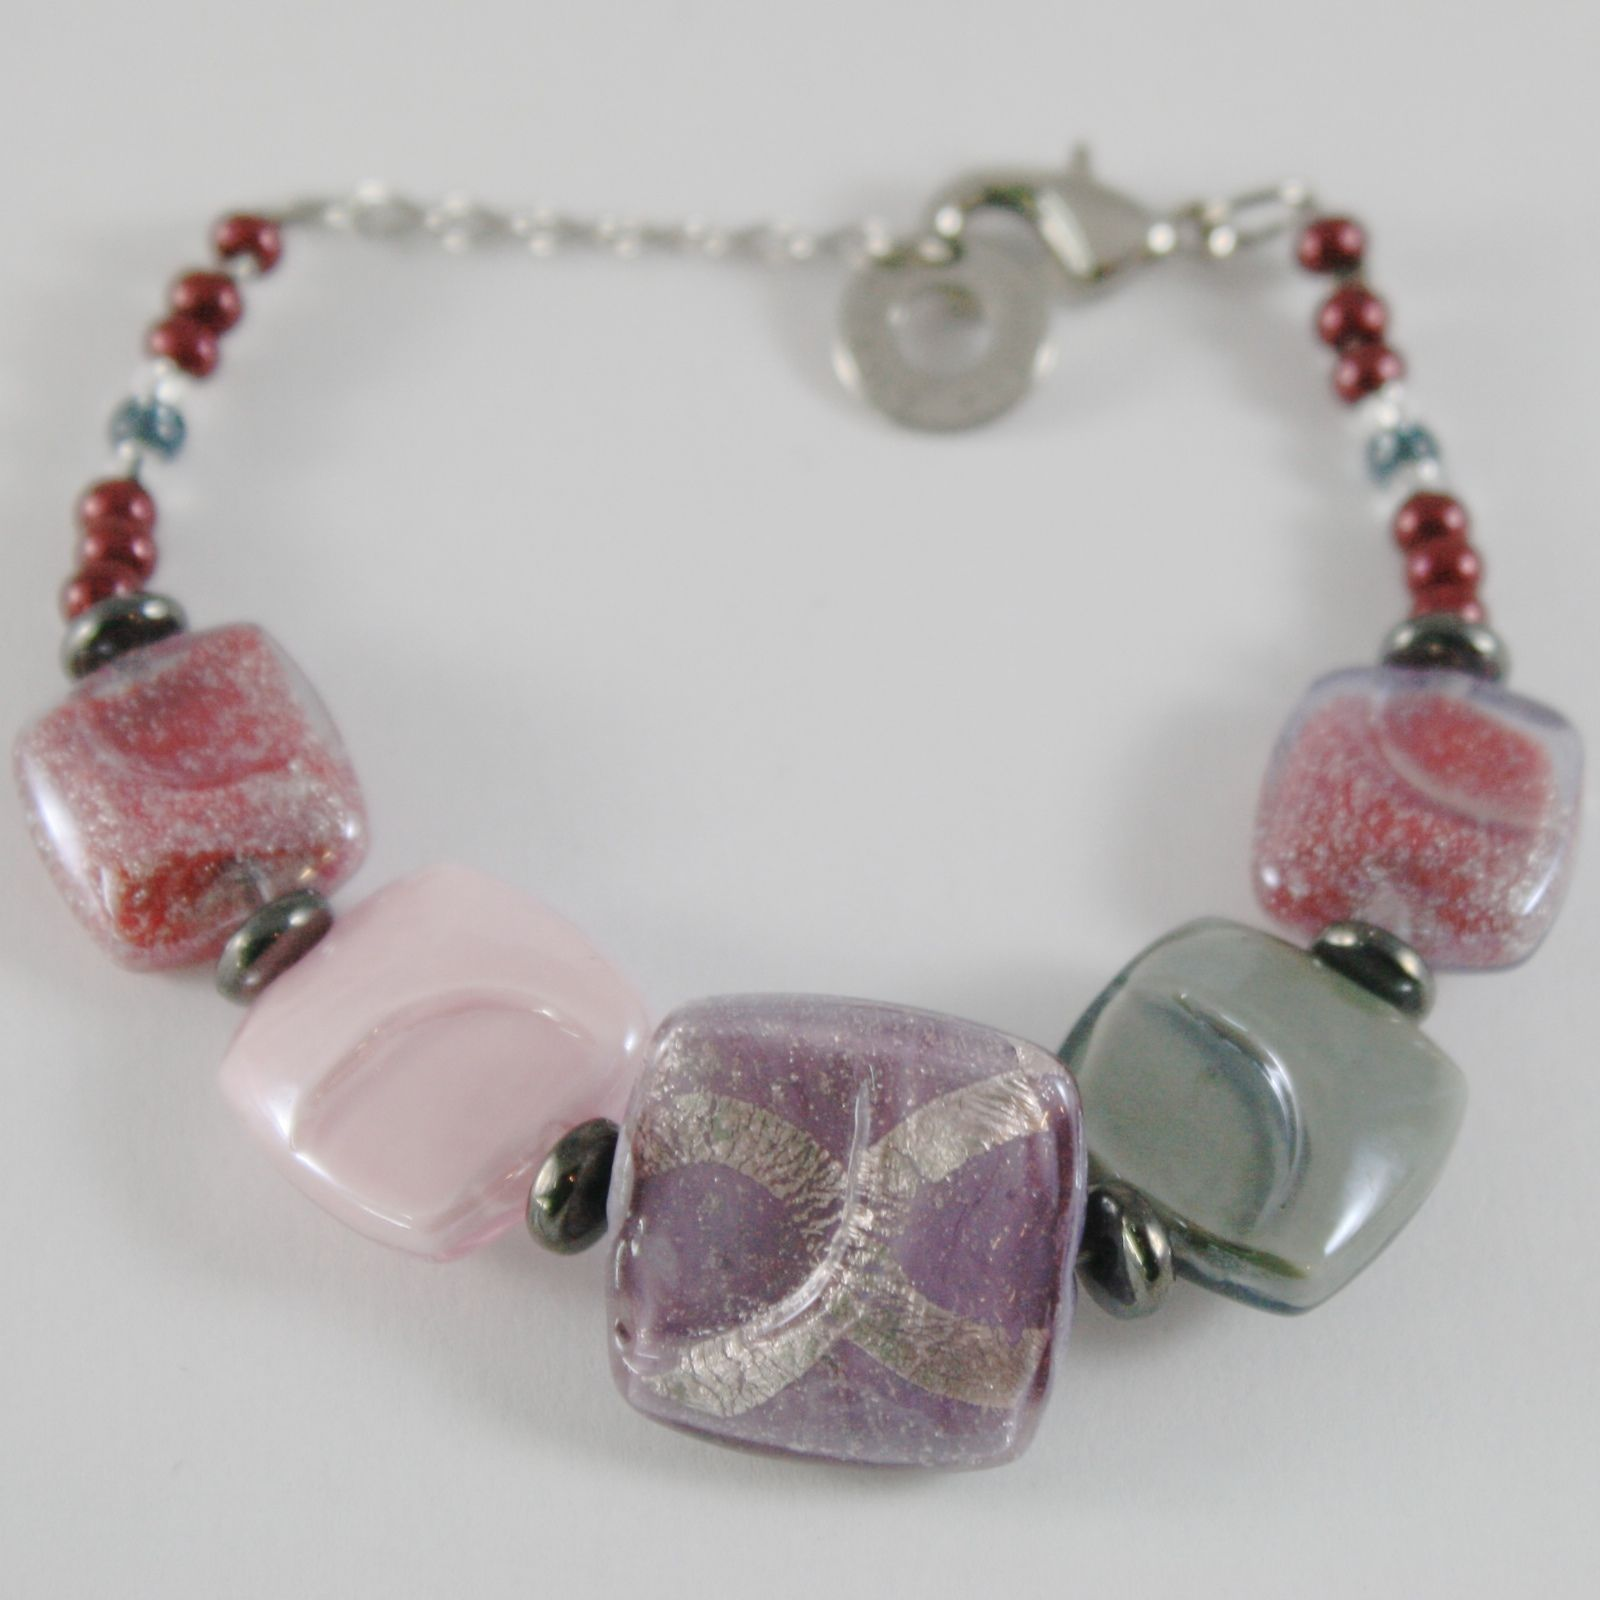 BRACELET ANTICA MURRINA VENEZIA WITH MURANO GLASS PINK, GRAY PURPLE BR729A11